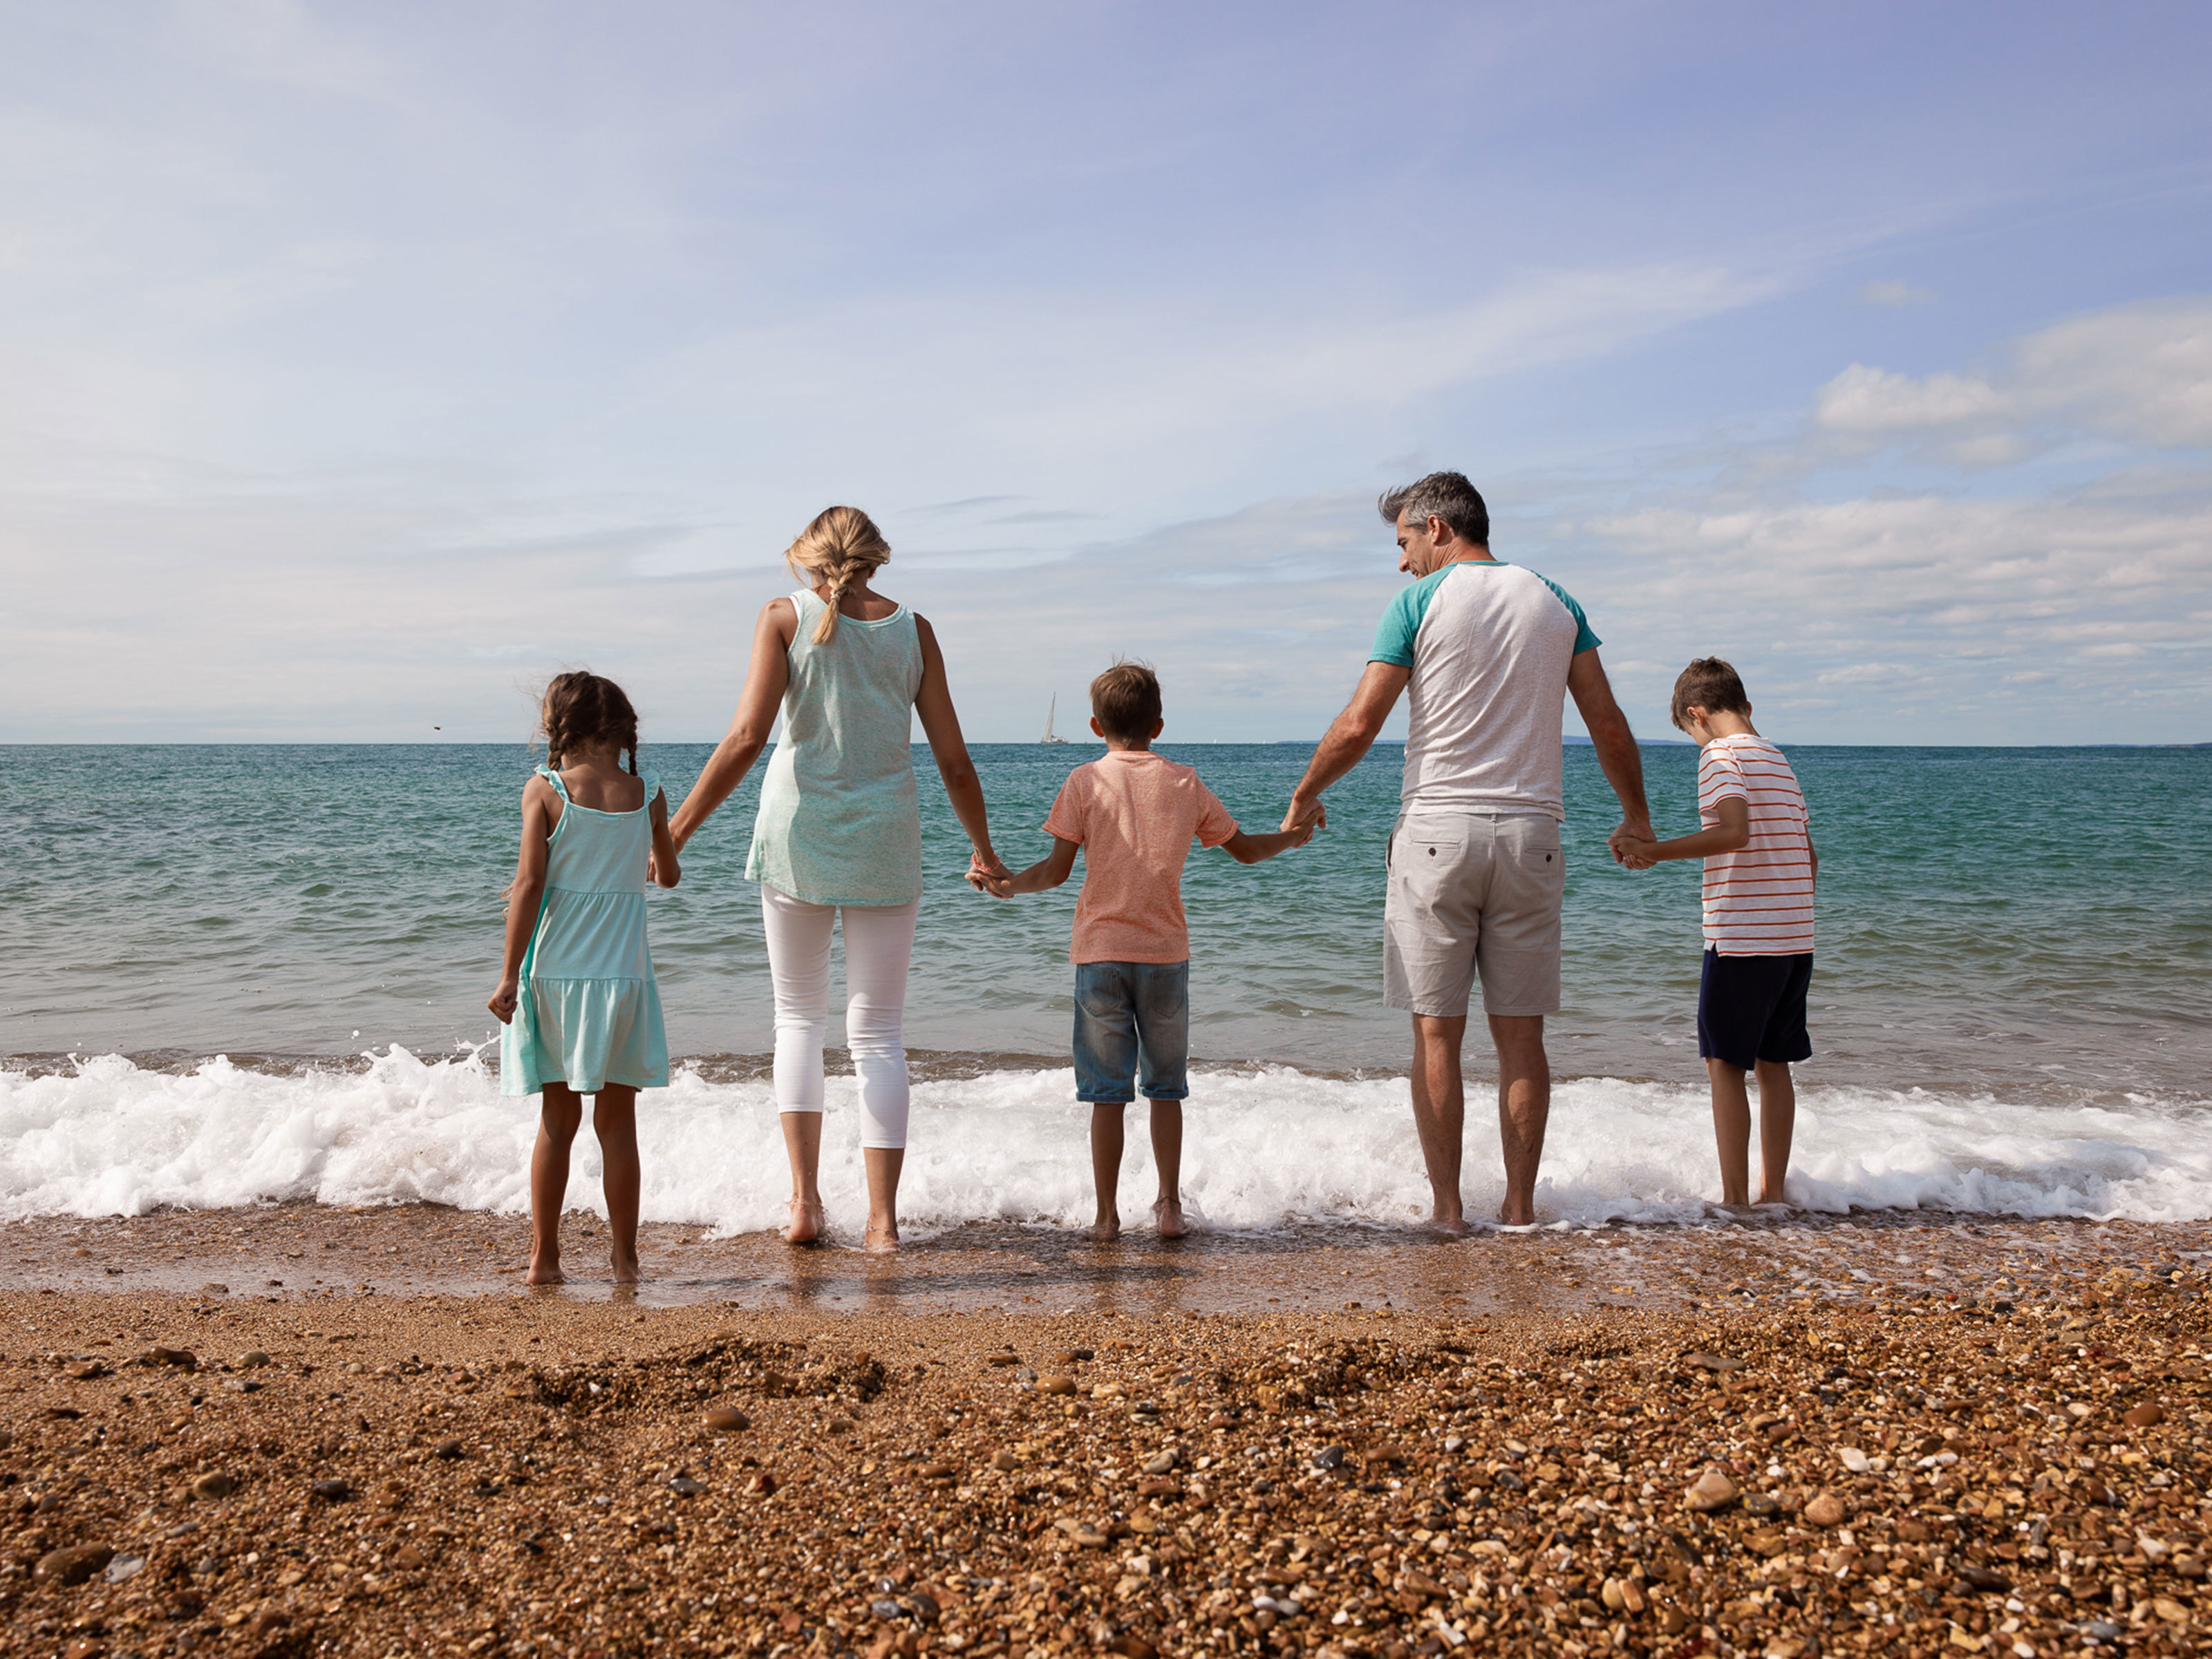 Family-paddling-at-Milford-on-Sea-beach